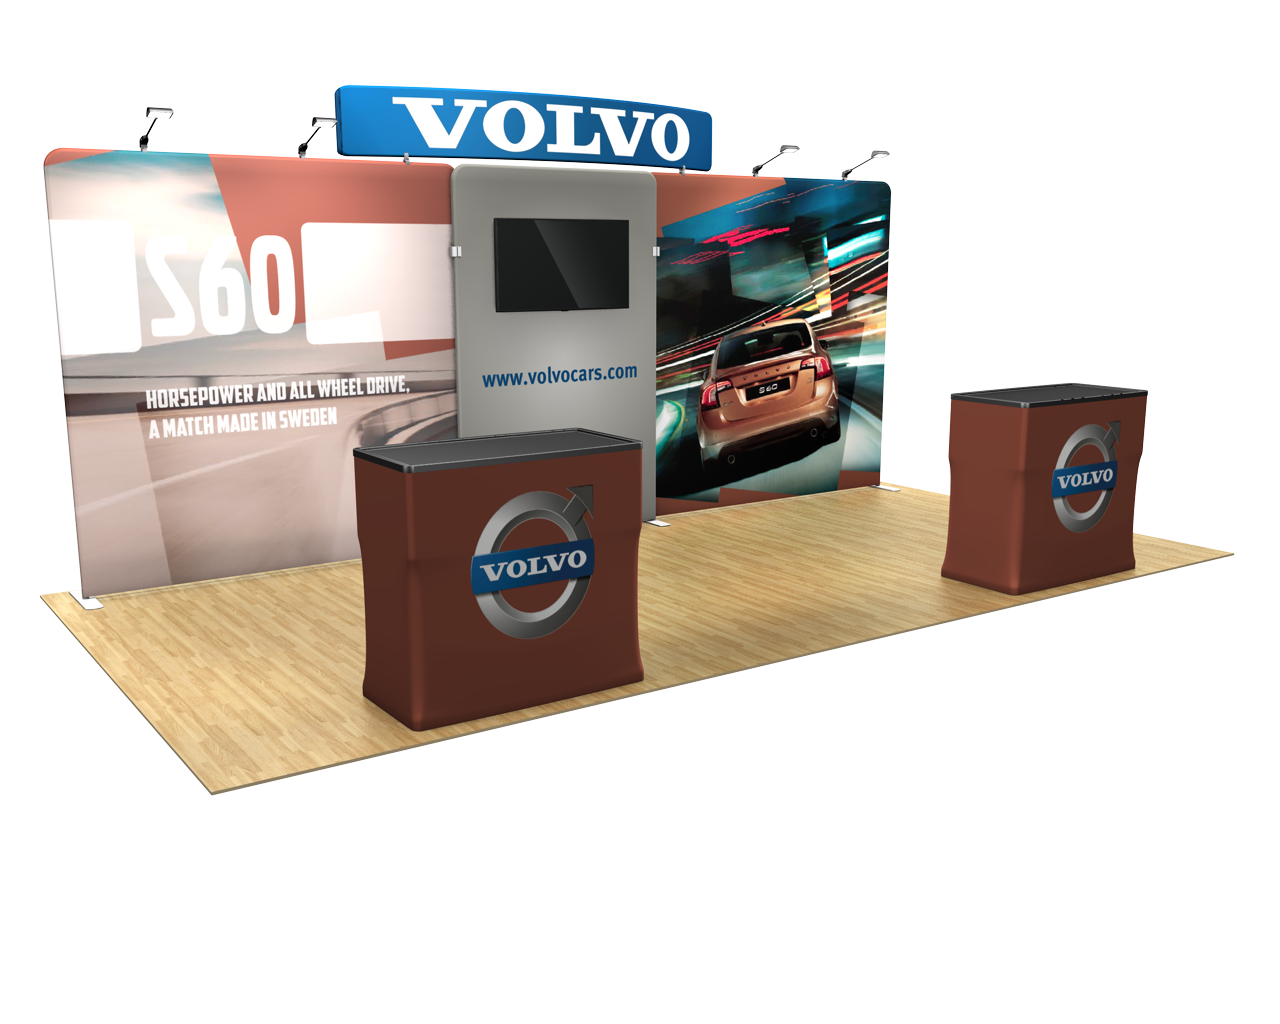 Waveline Media 20ft Display 20.02